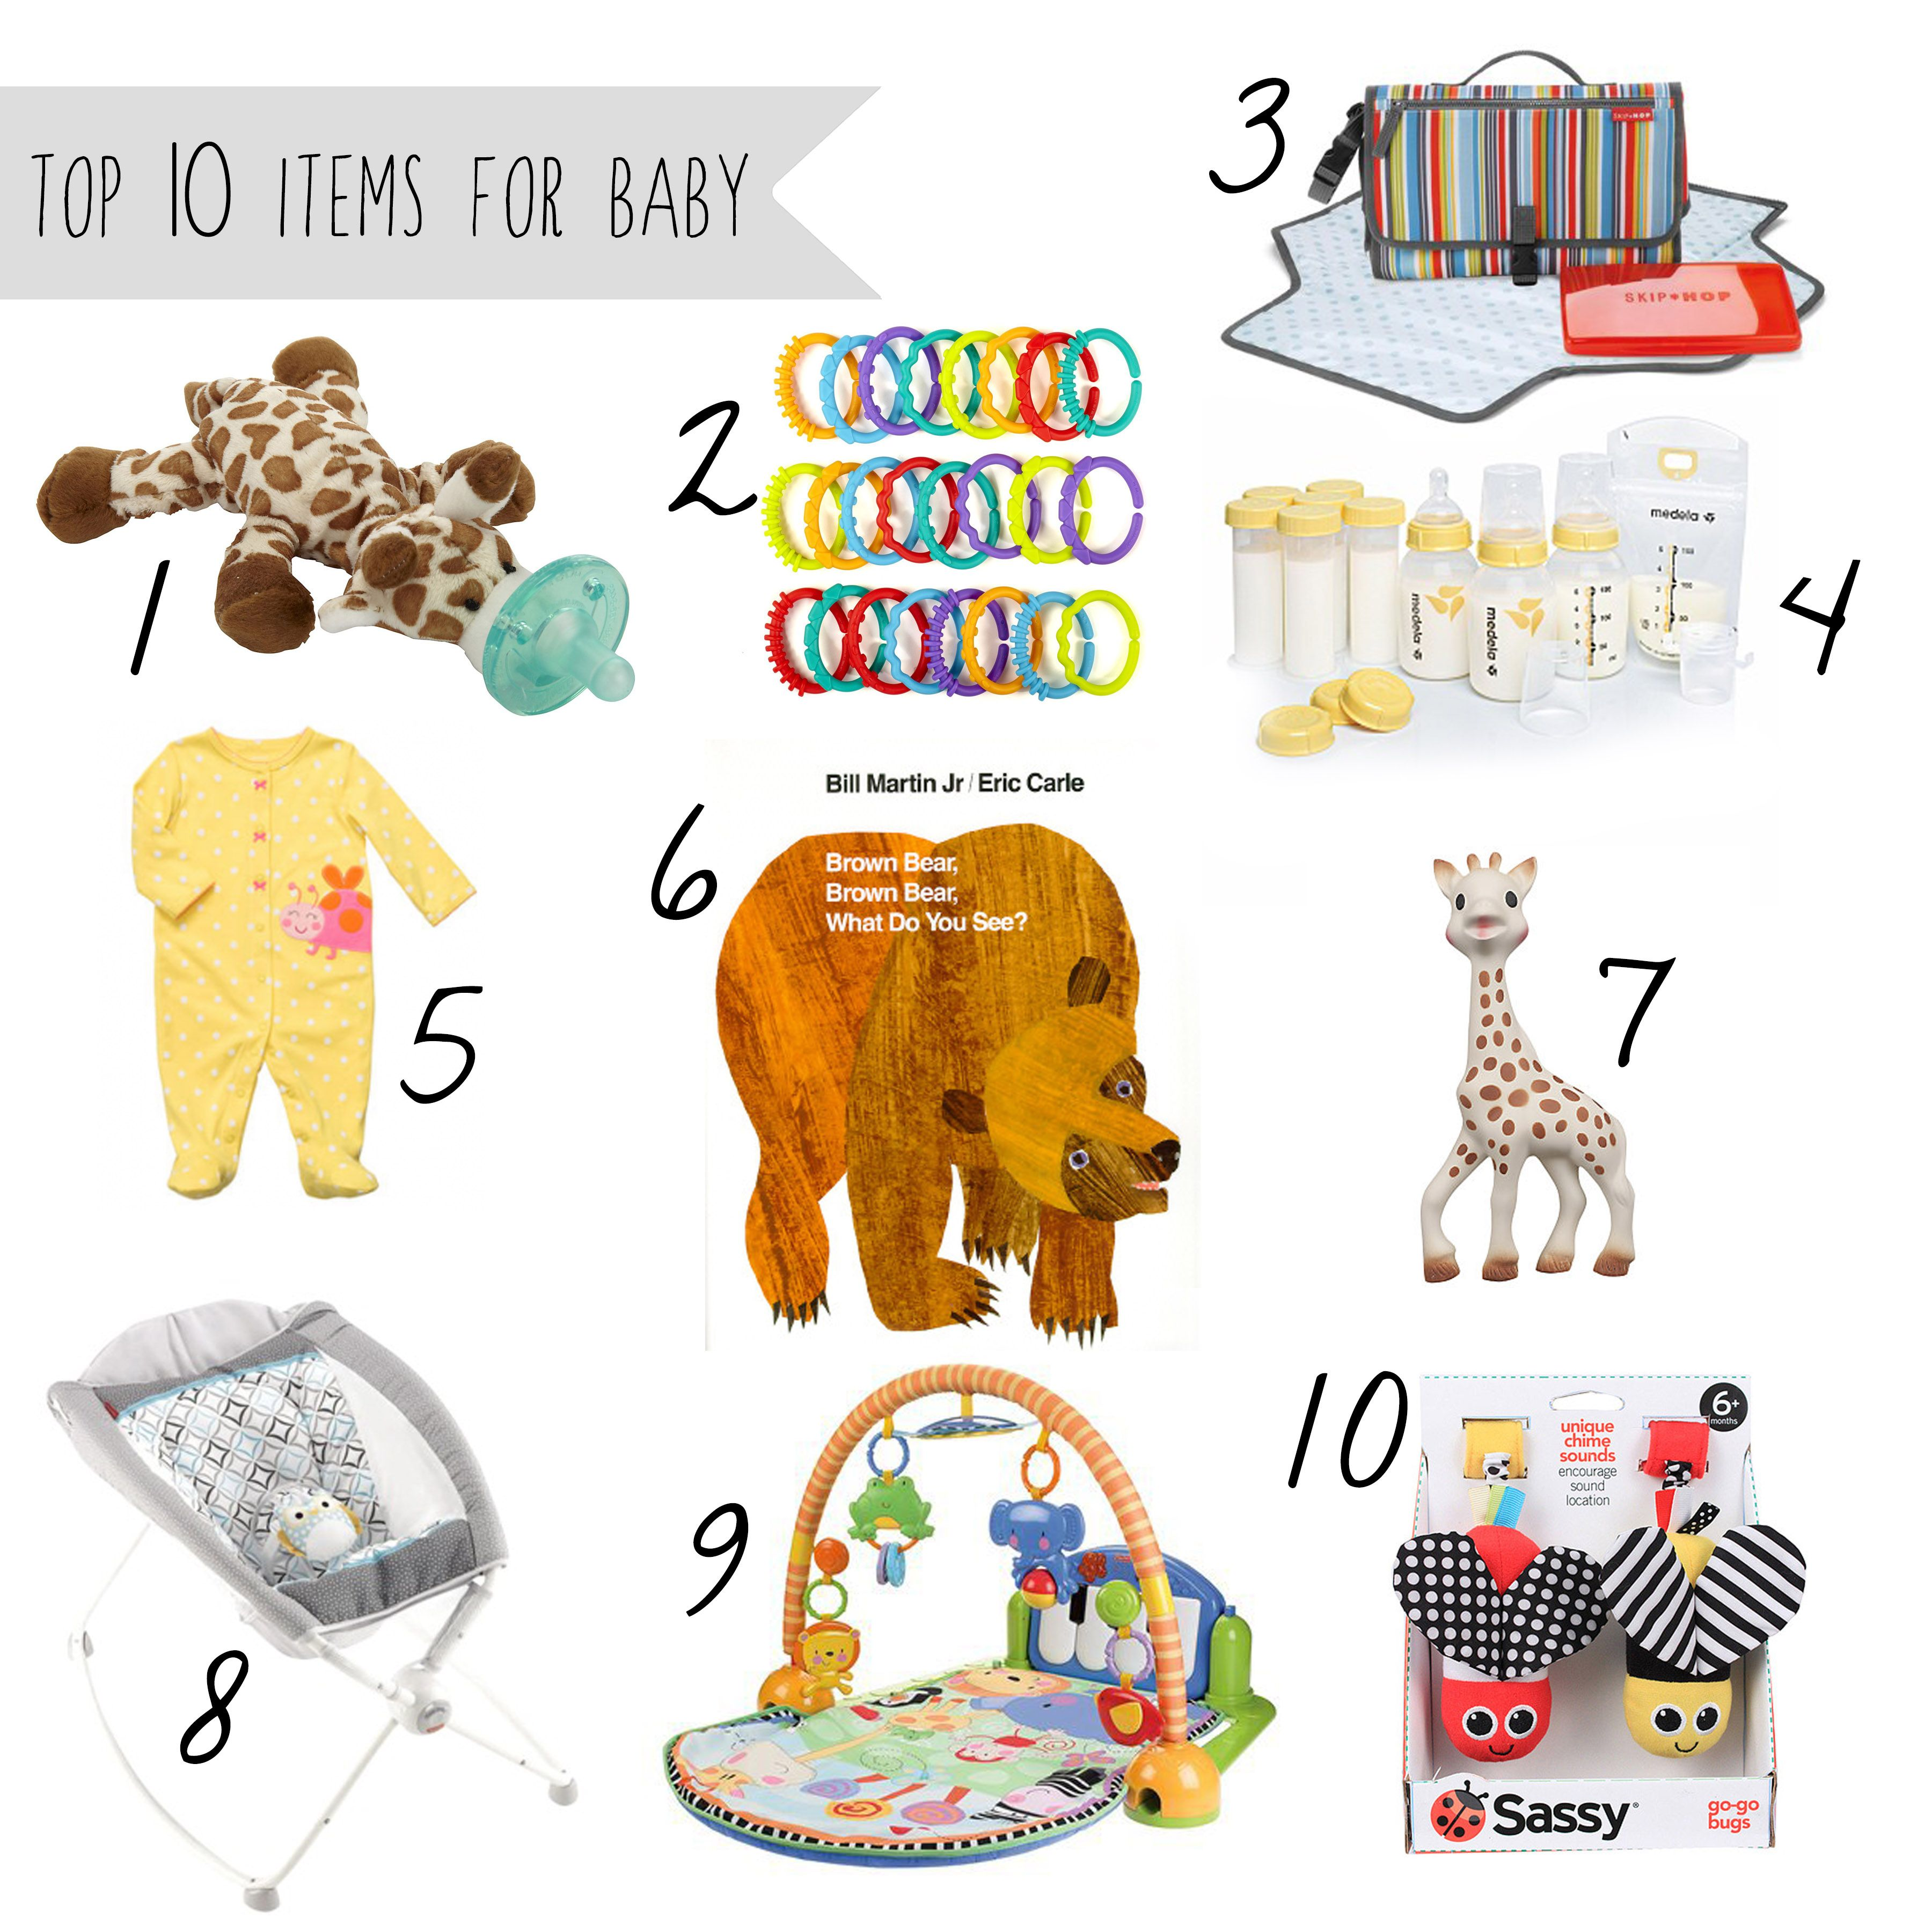 Top 10 Items for Baby 0 6 Months